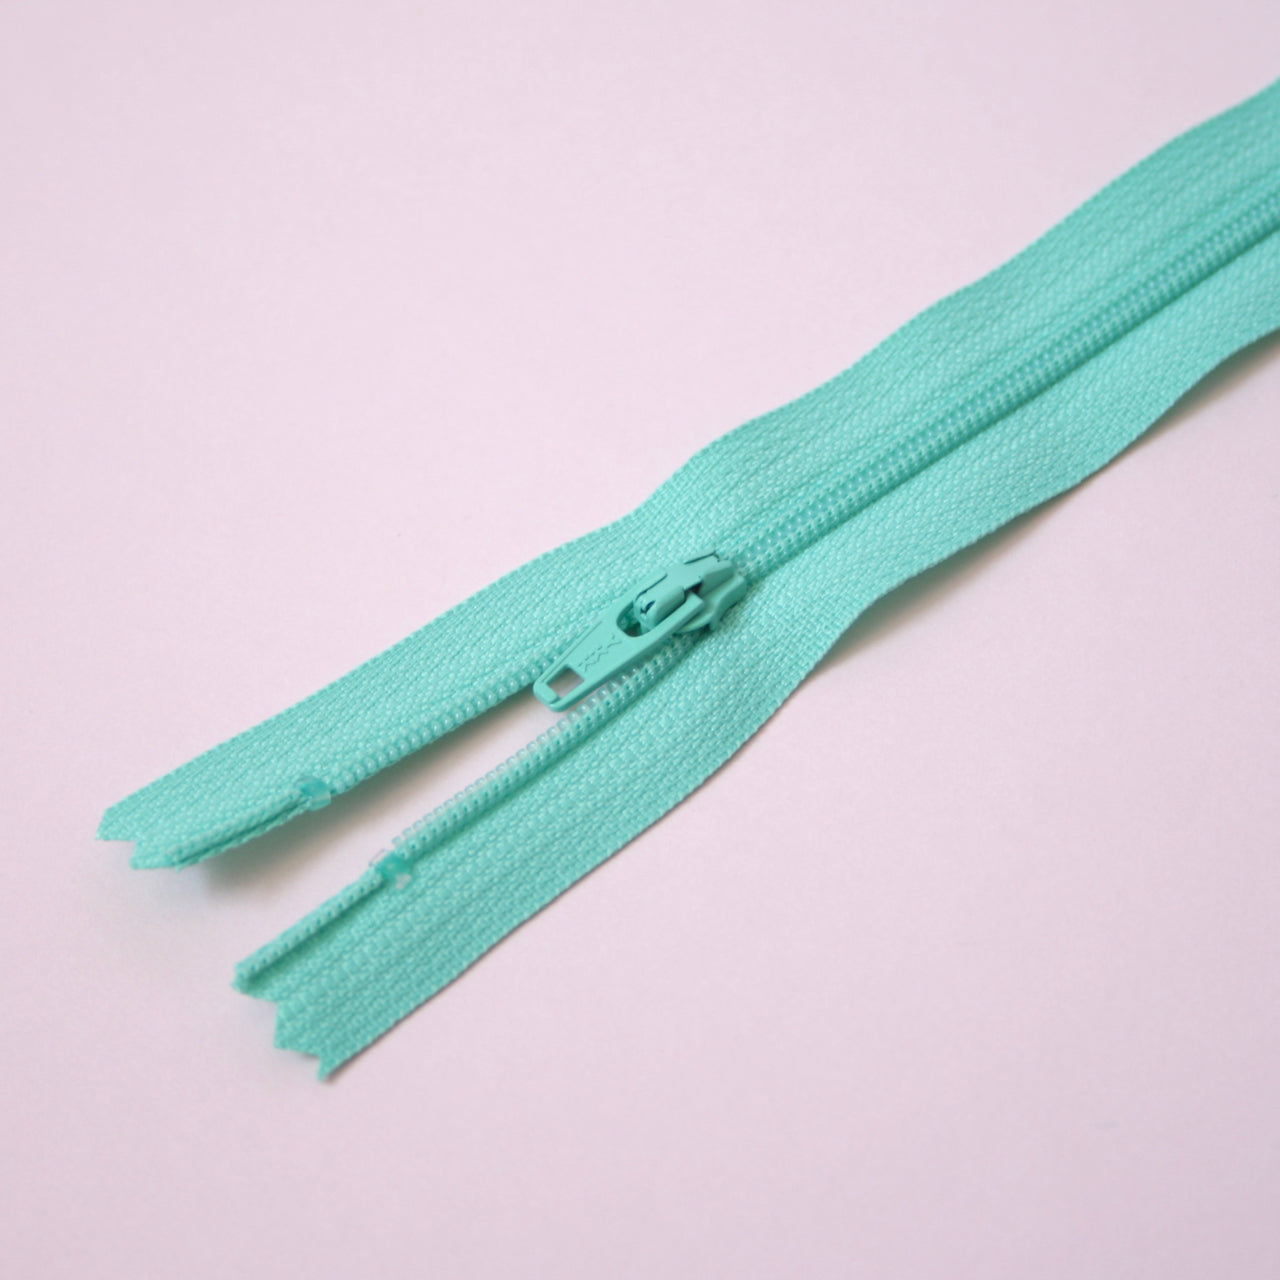 30cm 12 Inch Nylon YKK Dress Zip - 534 Mint